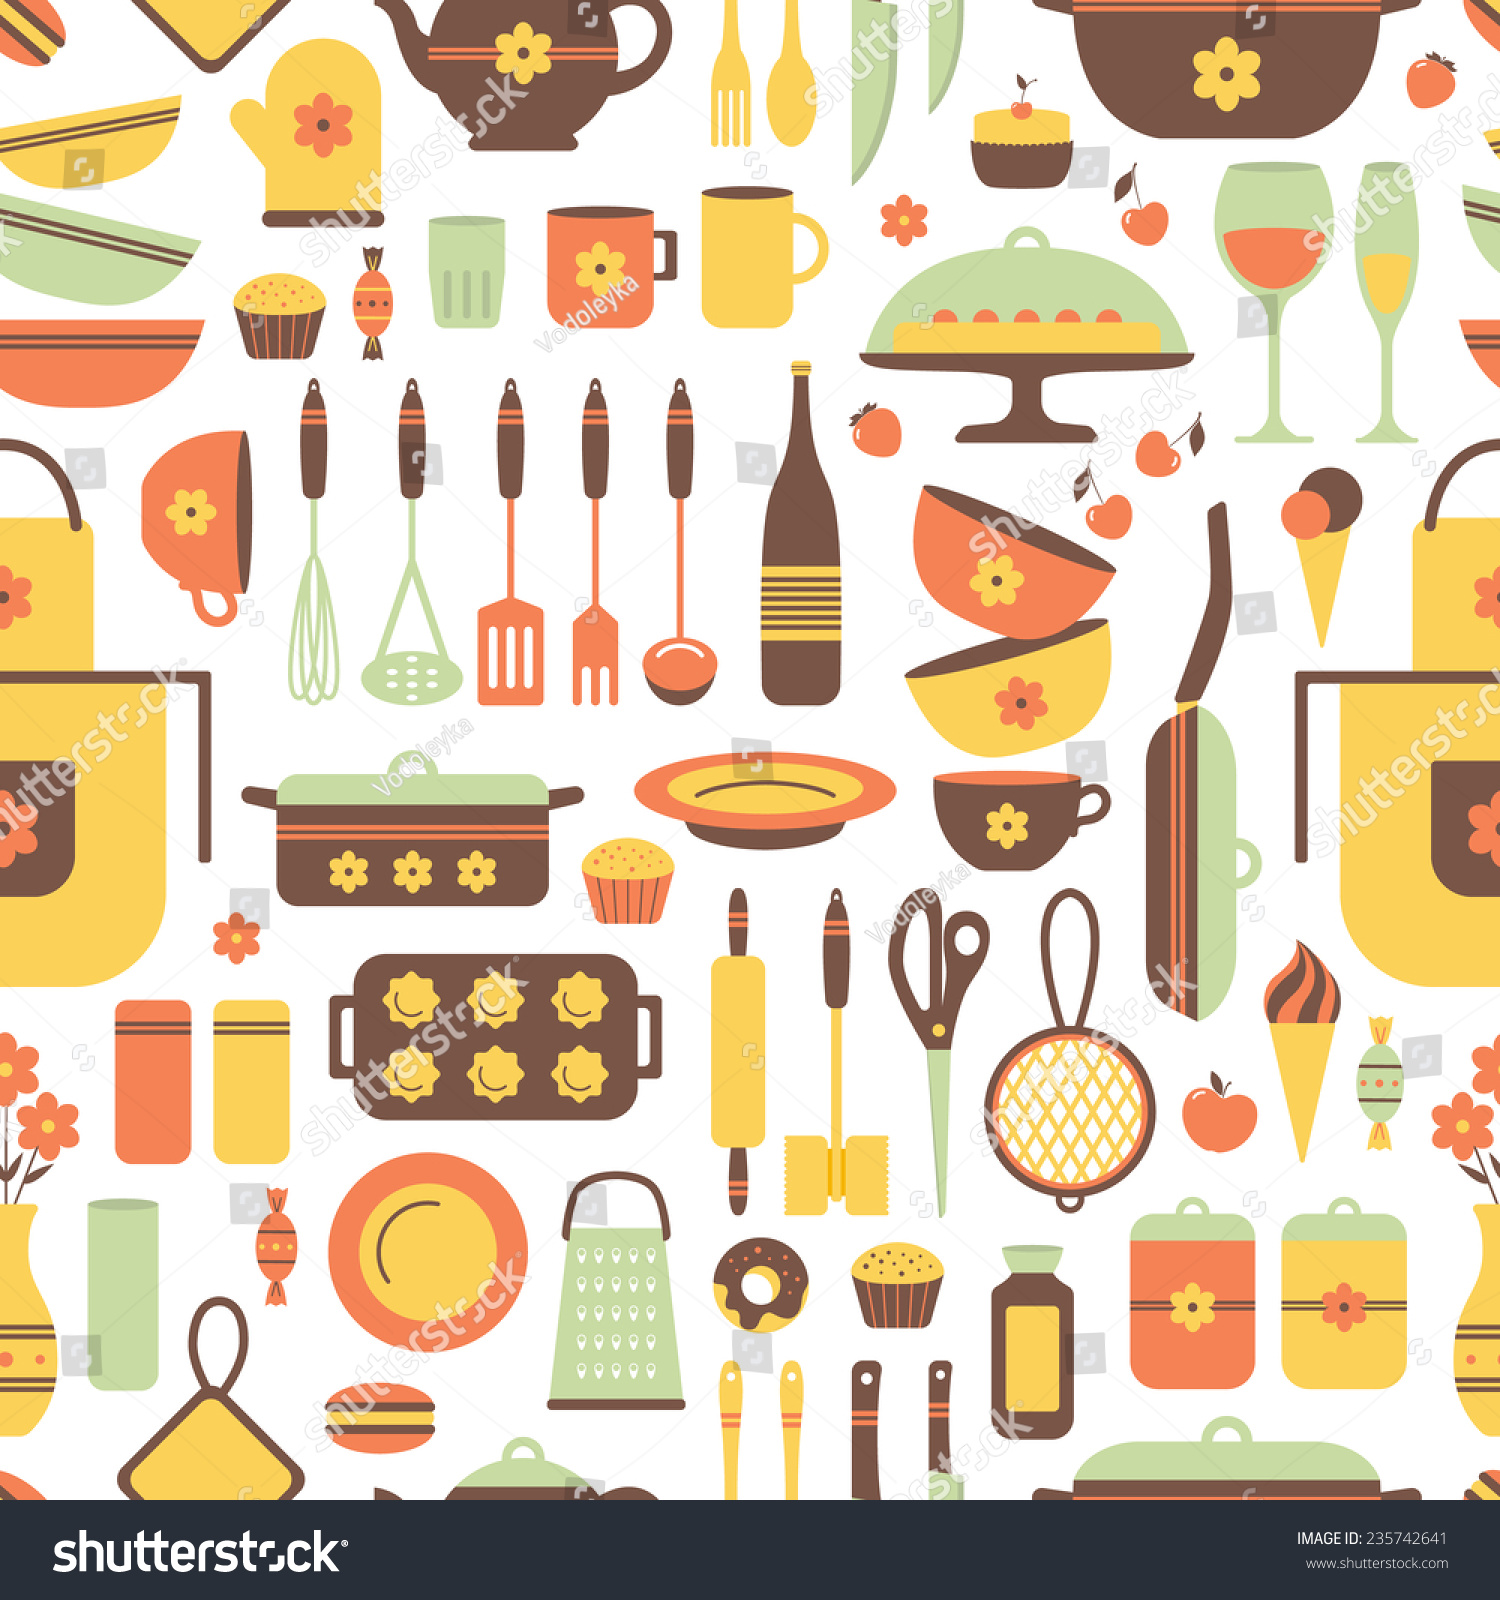 Kitchen Utensils Background: Set Kitchen Utensils Food Isolated Objects Stock Vector